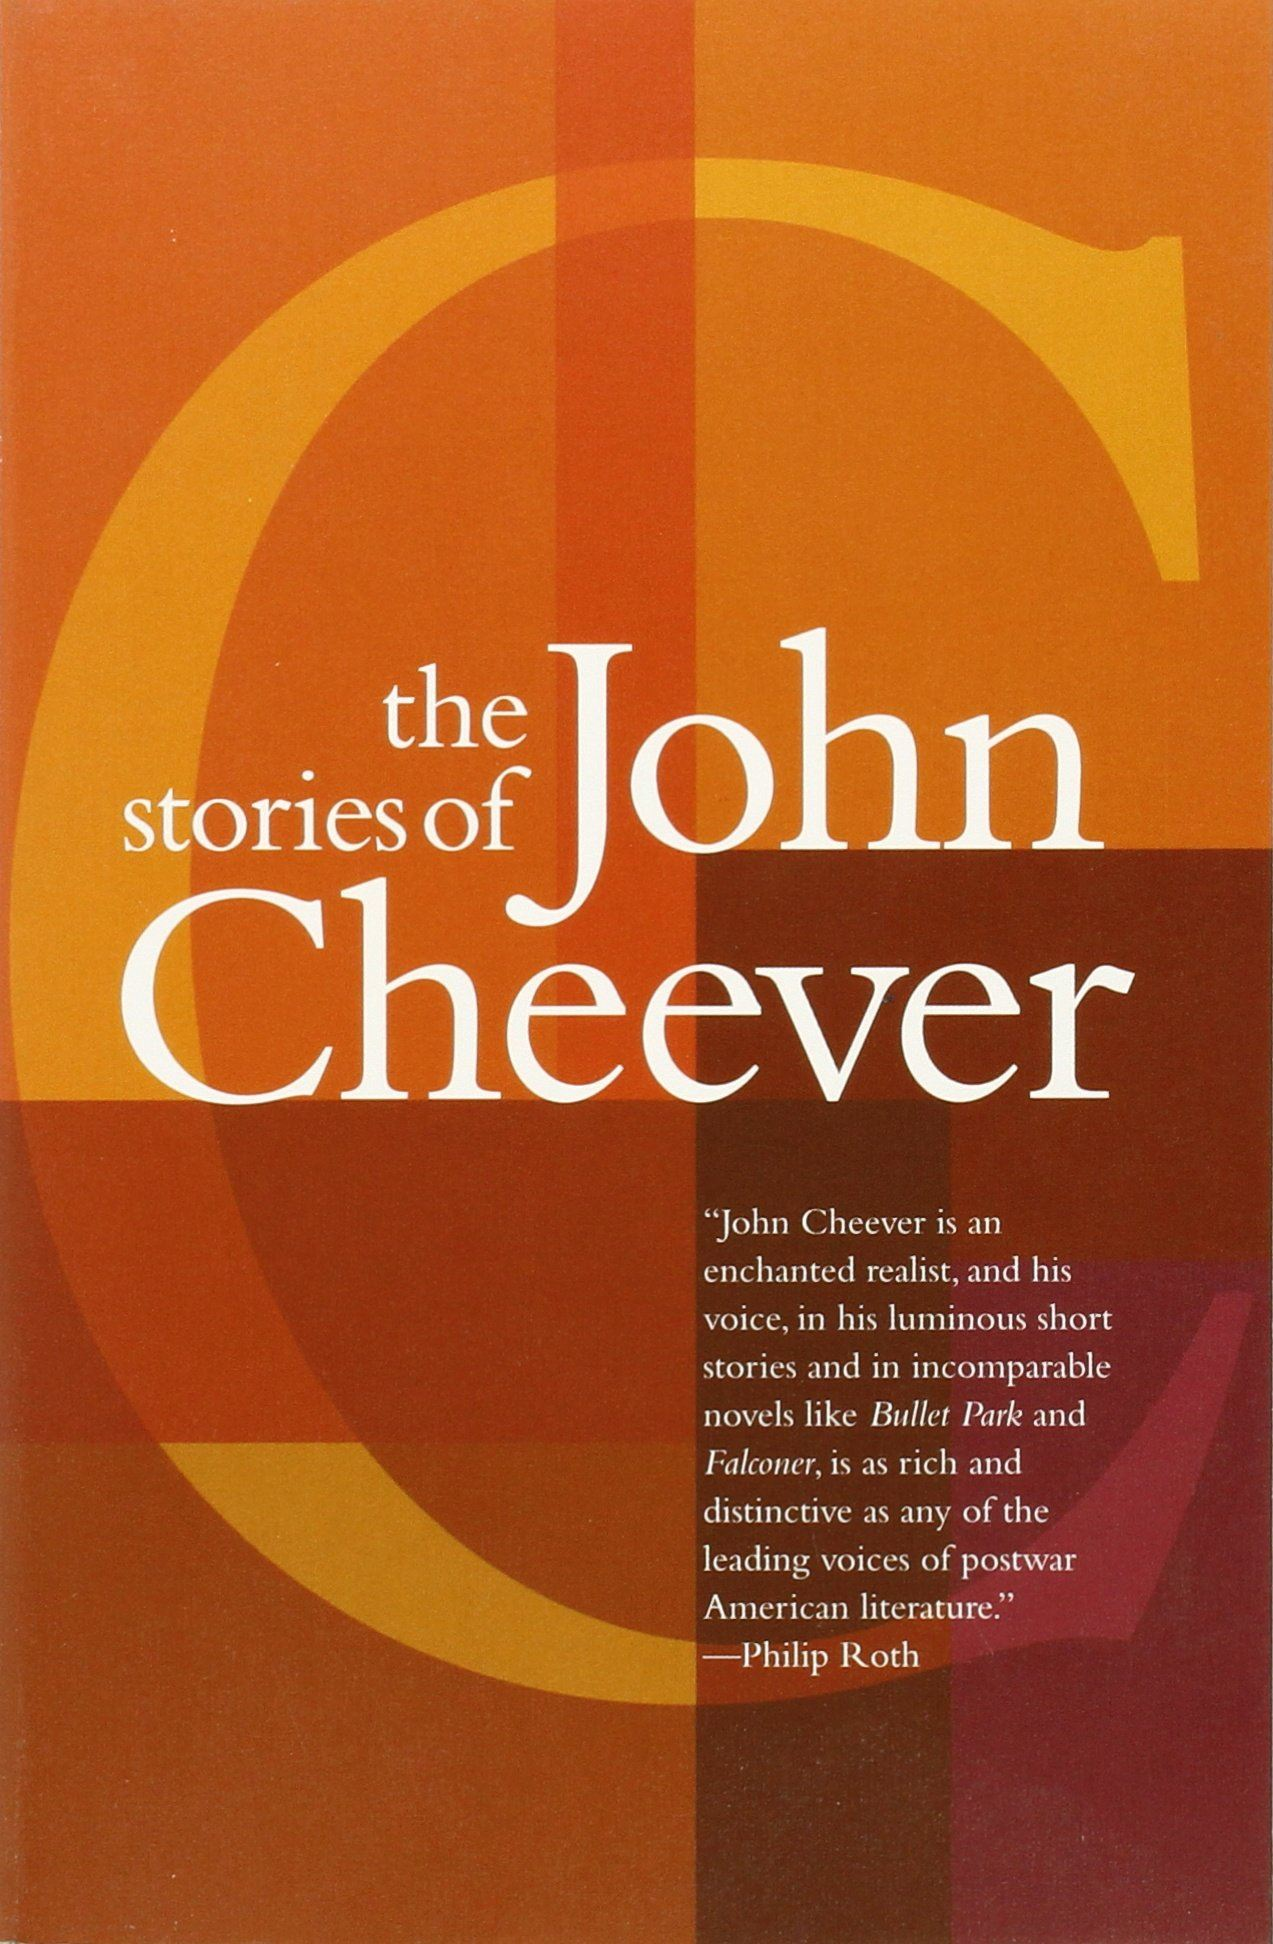 The Stories of John Cheever (book cover)